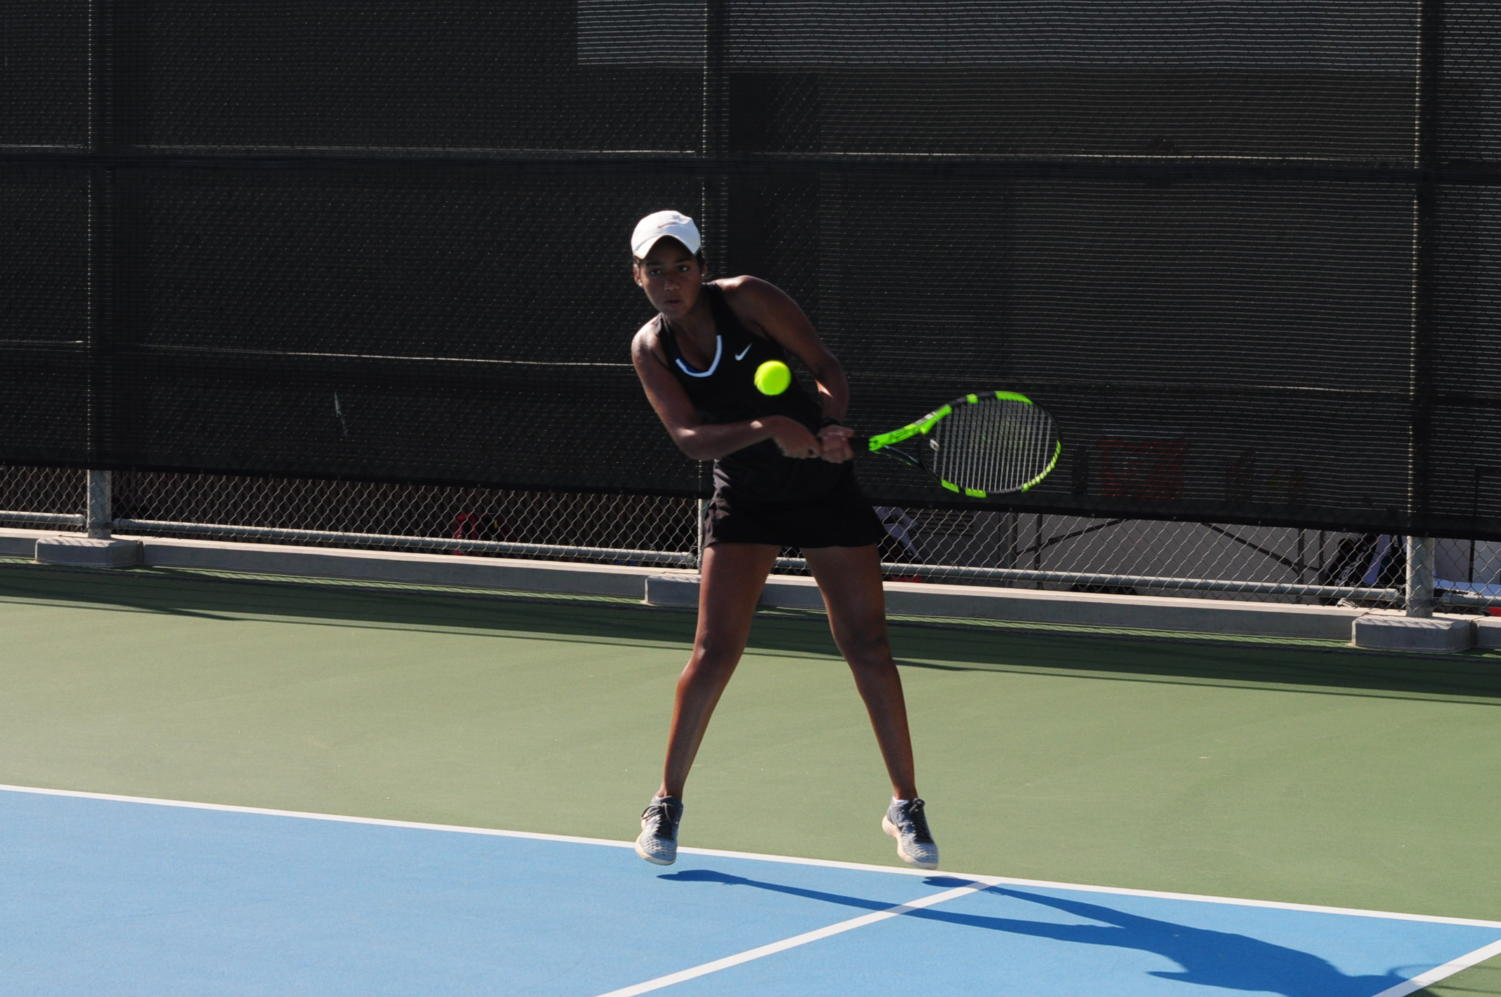 With determination in her eyes, Pavani swings a powerful backhand to launch the ball back to her opponent. Known by her teammates to be friendly and playful off the court, during matches, she develops a more serious and focused tone that reveals her competitive nature.